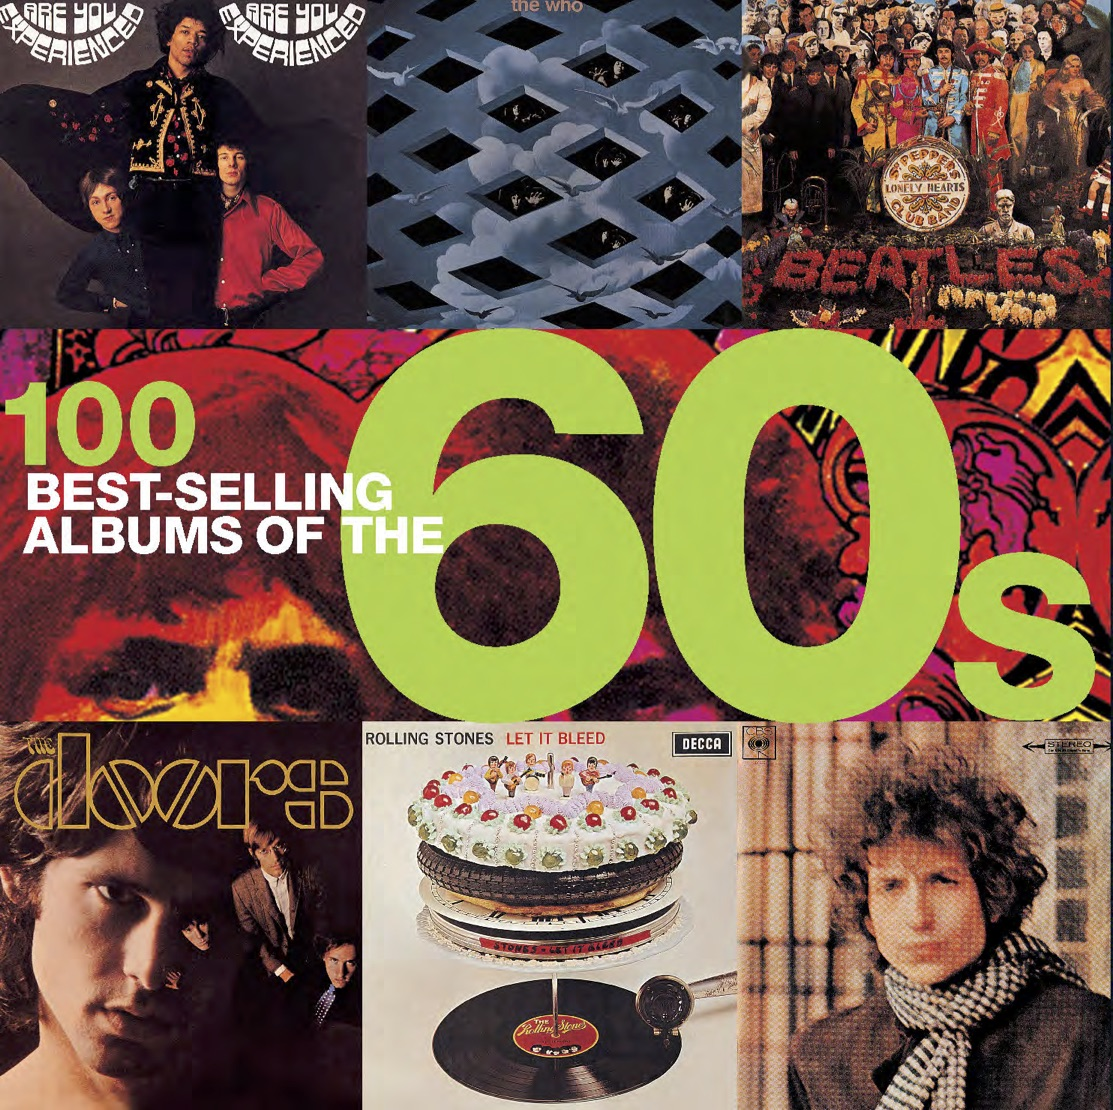 100 Best-Selling Albums of the 60s